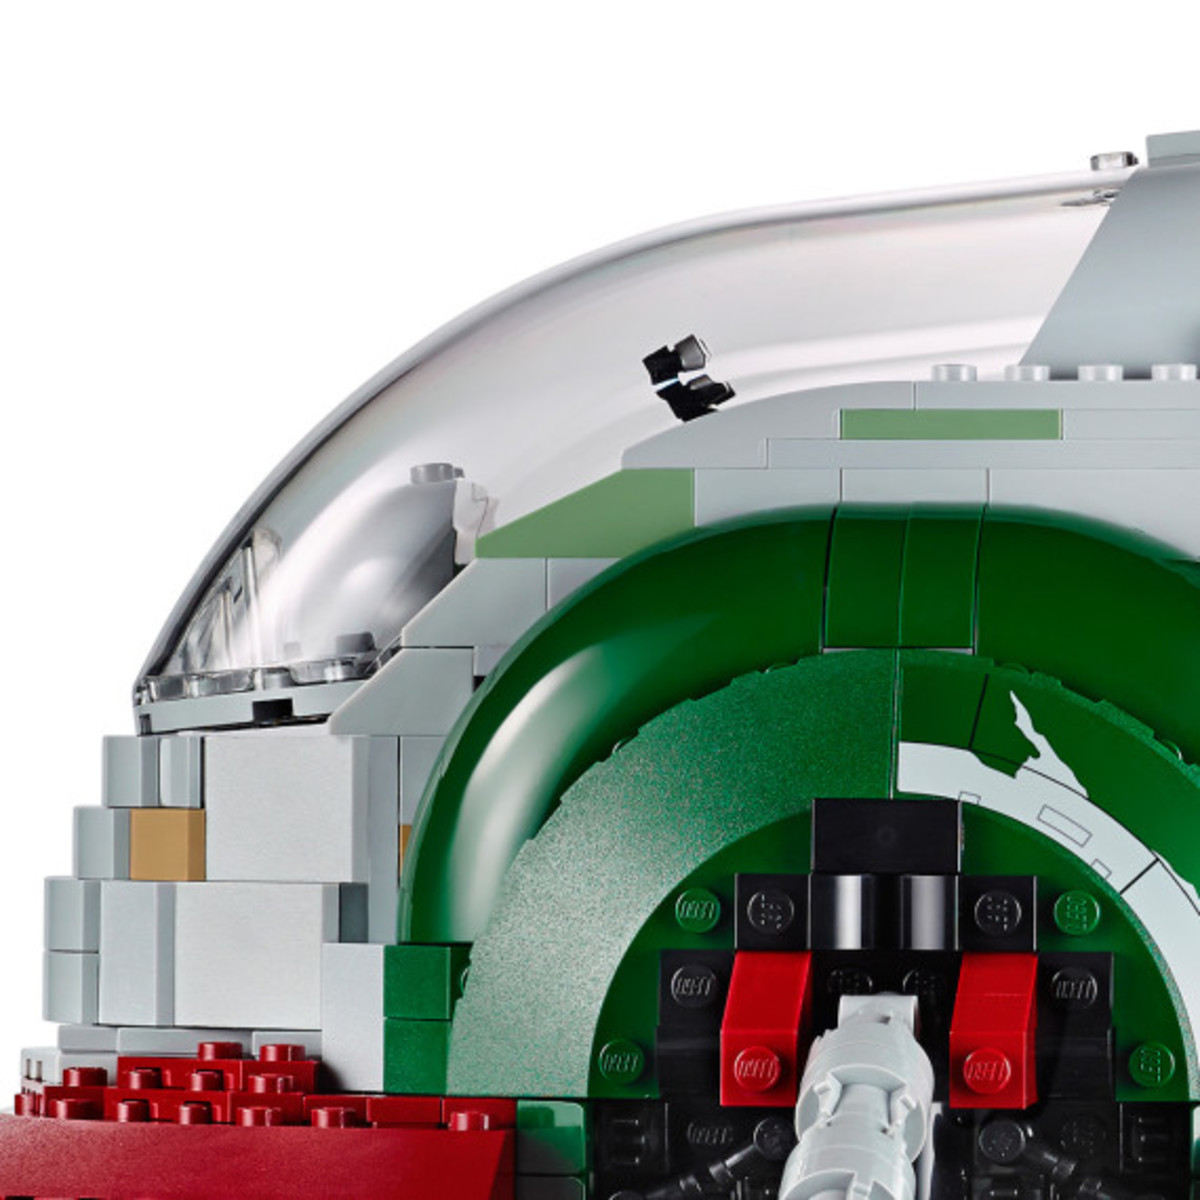 Star Wars x LEGO Ultimate Collector's Series: Boba Fett's Slave I Kit | Release Info - 3